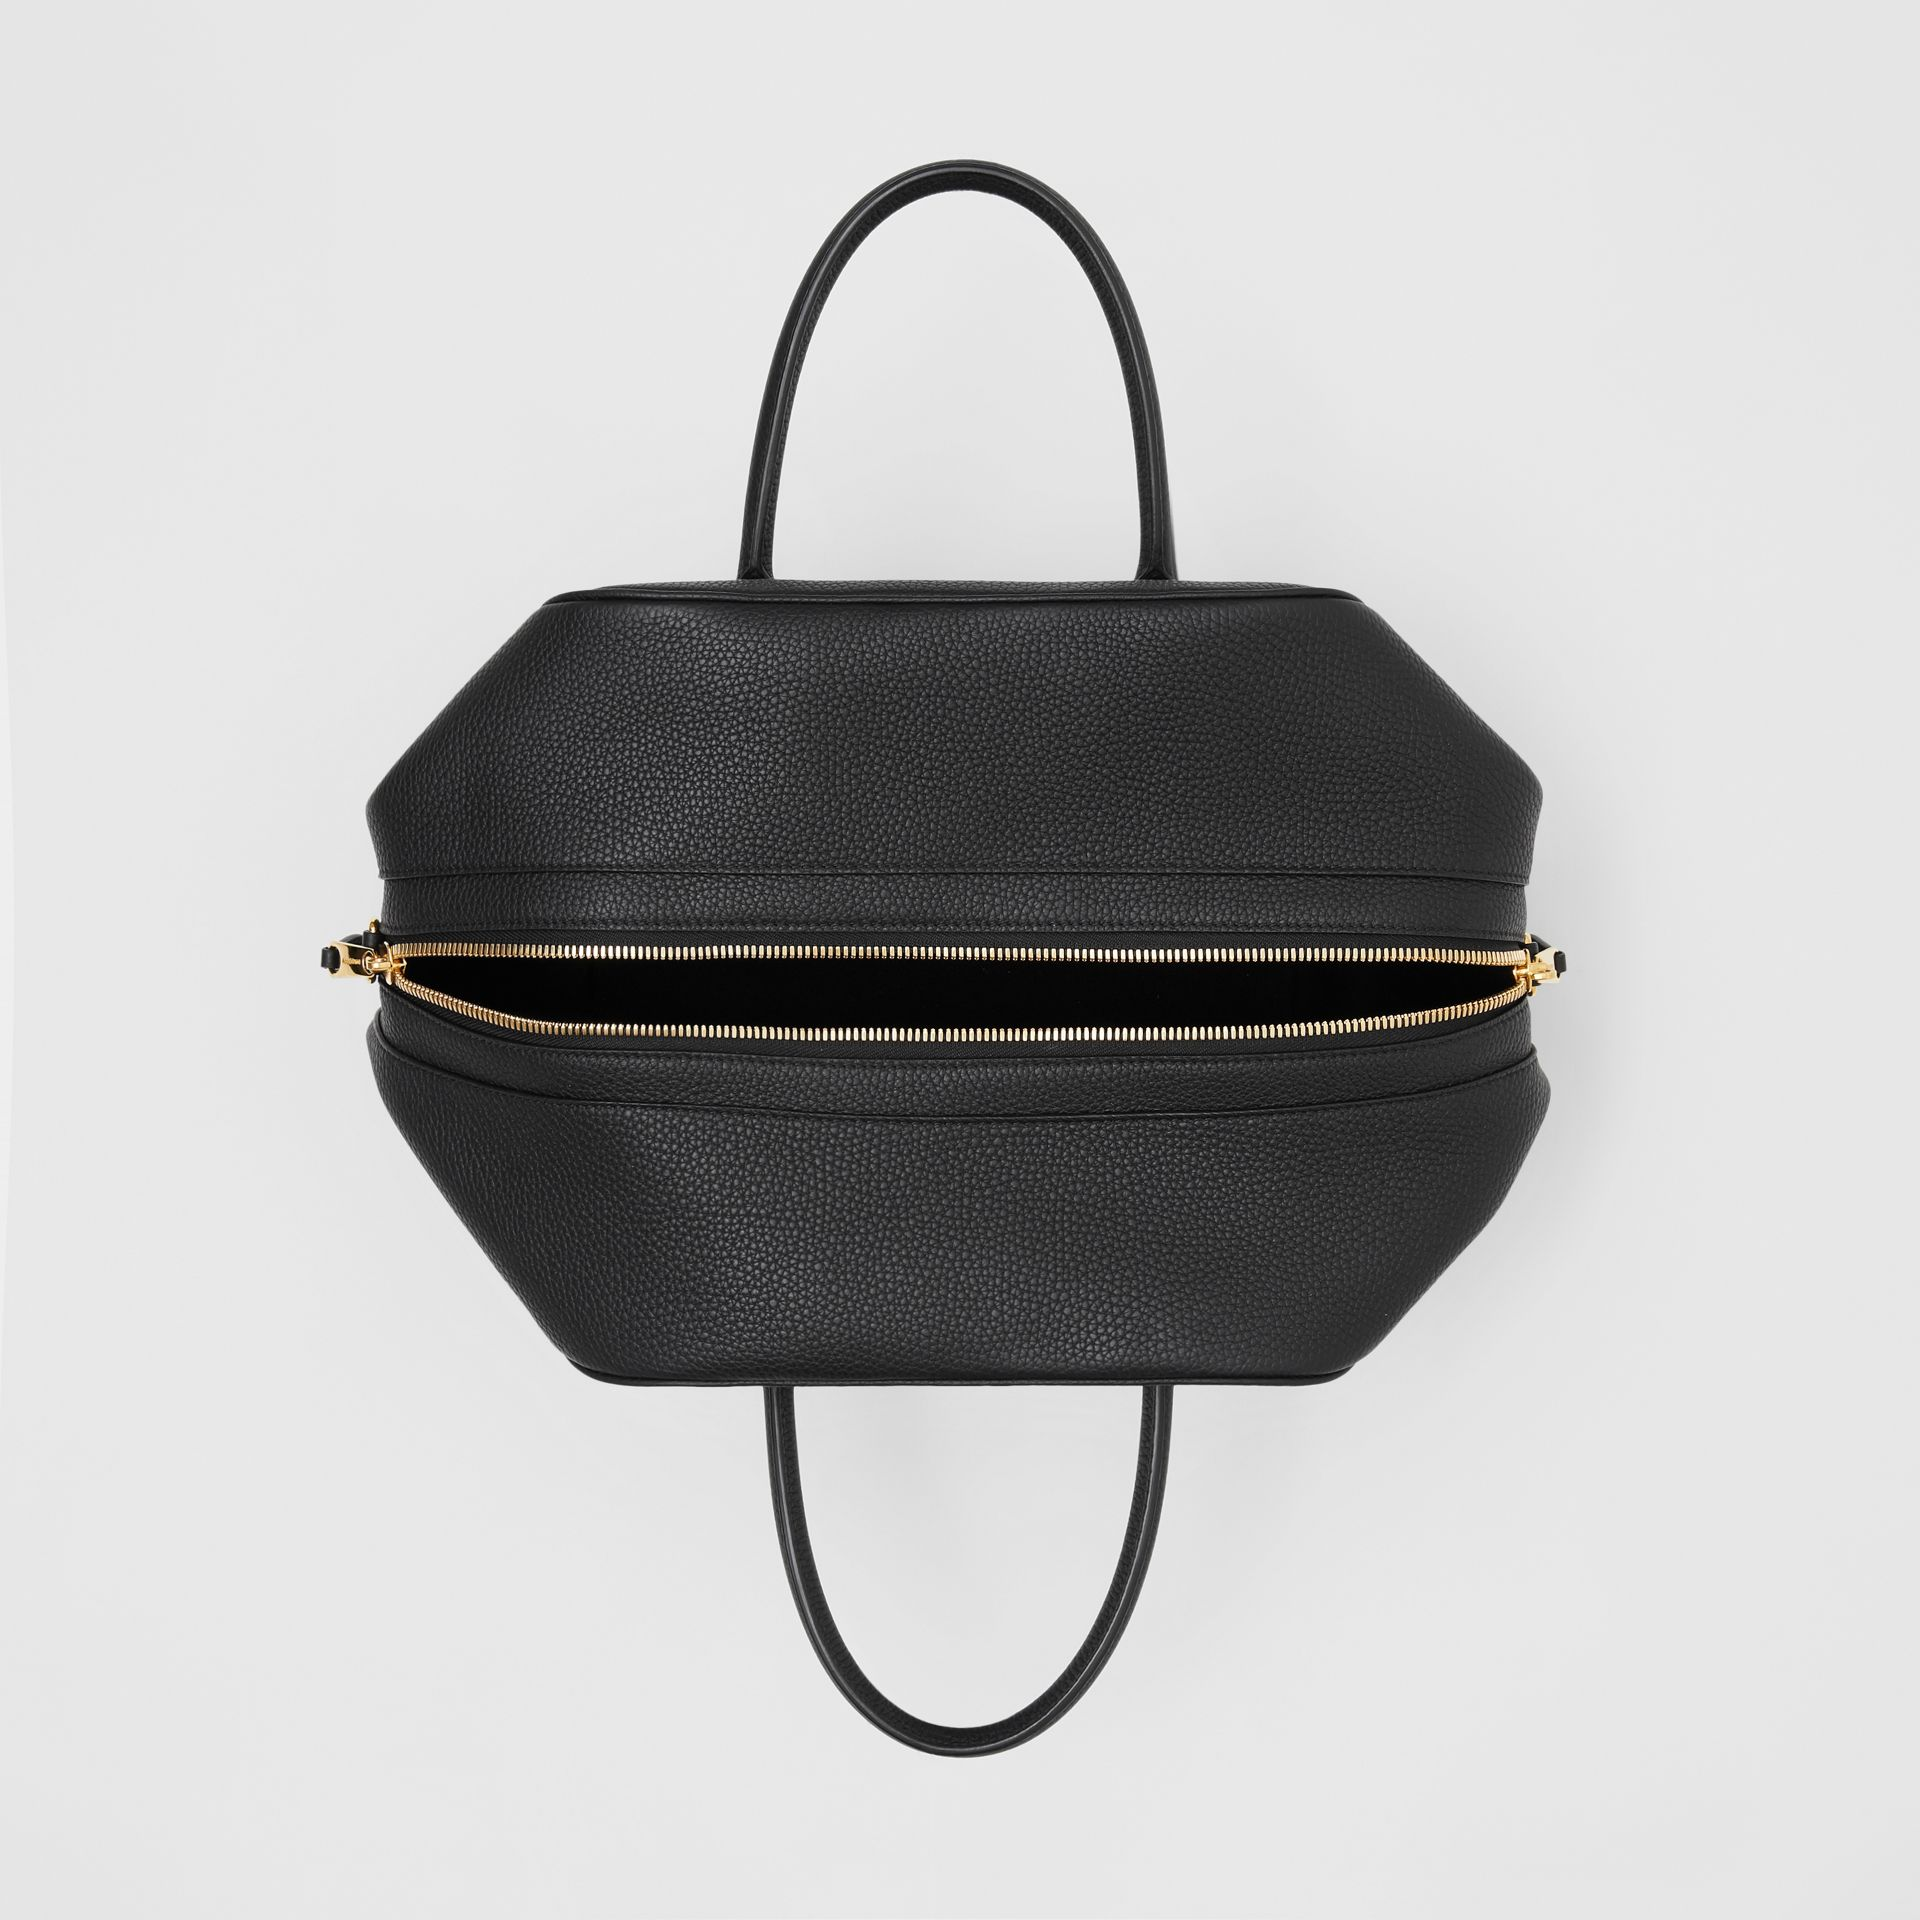 Medium Leather Cube Bag in Black - Women | Burberry Hong Kong S.A.R - gallery image 4